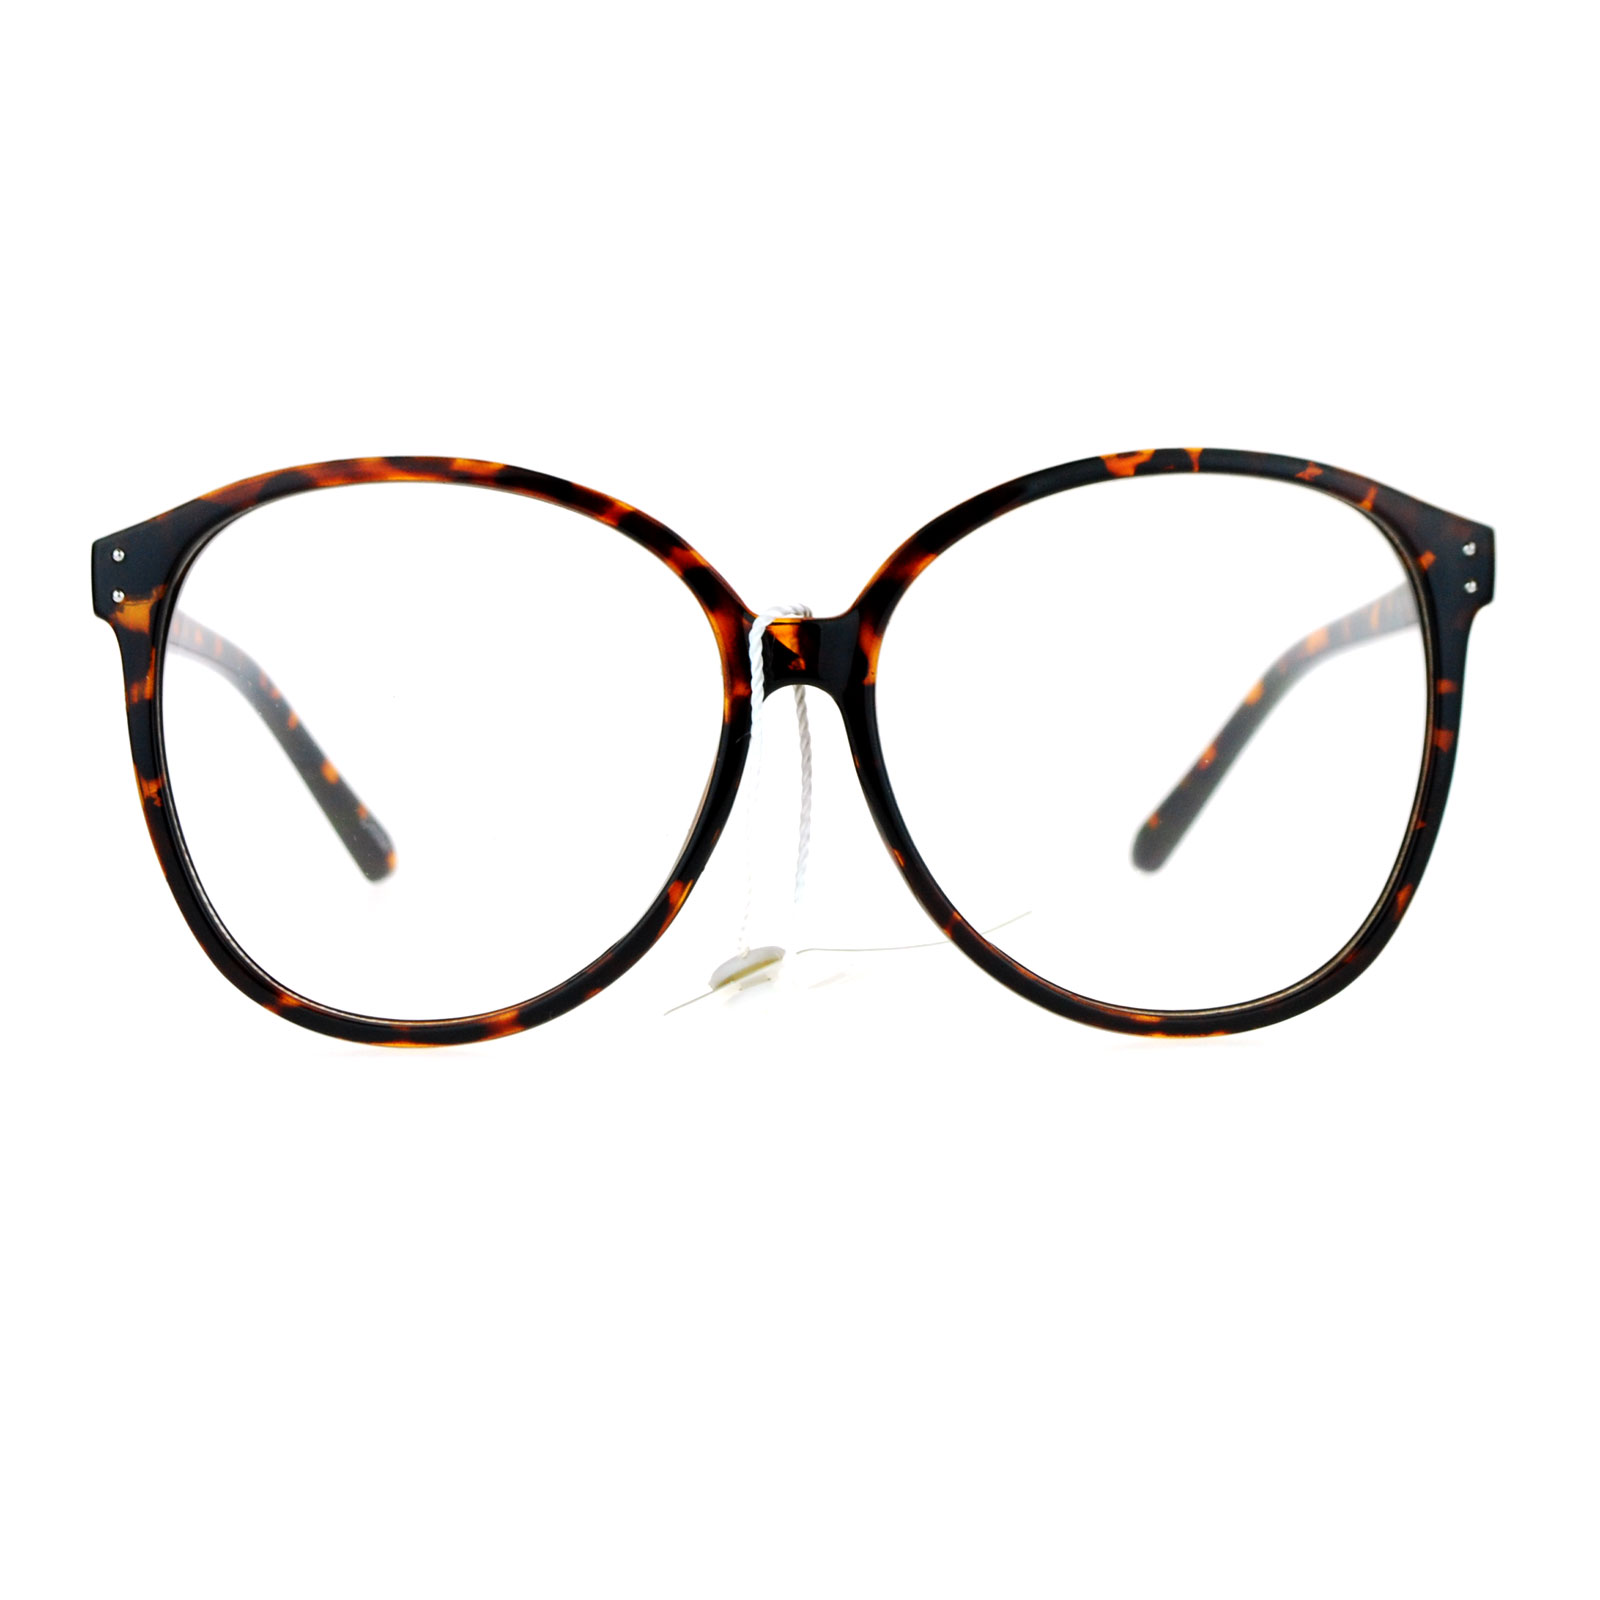 Sa106 Womens Oversize Manga School Girl Nerdy Eye Glasses